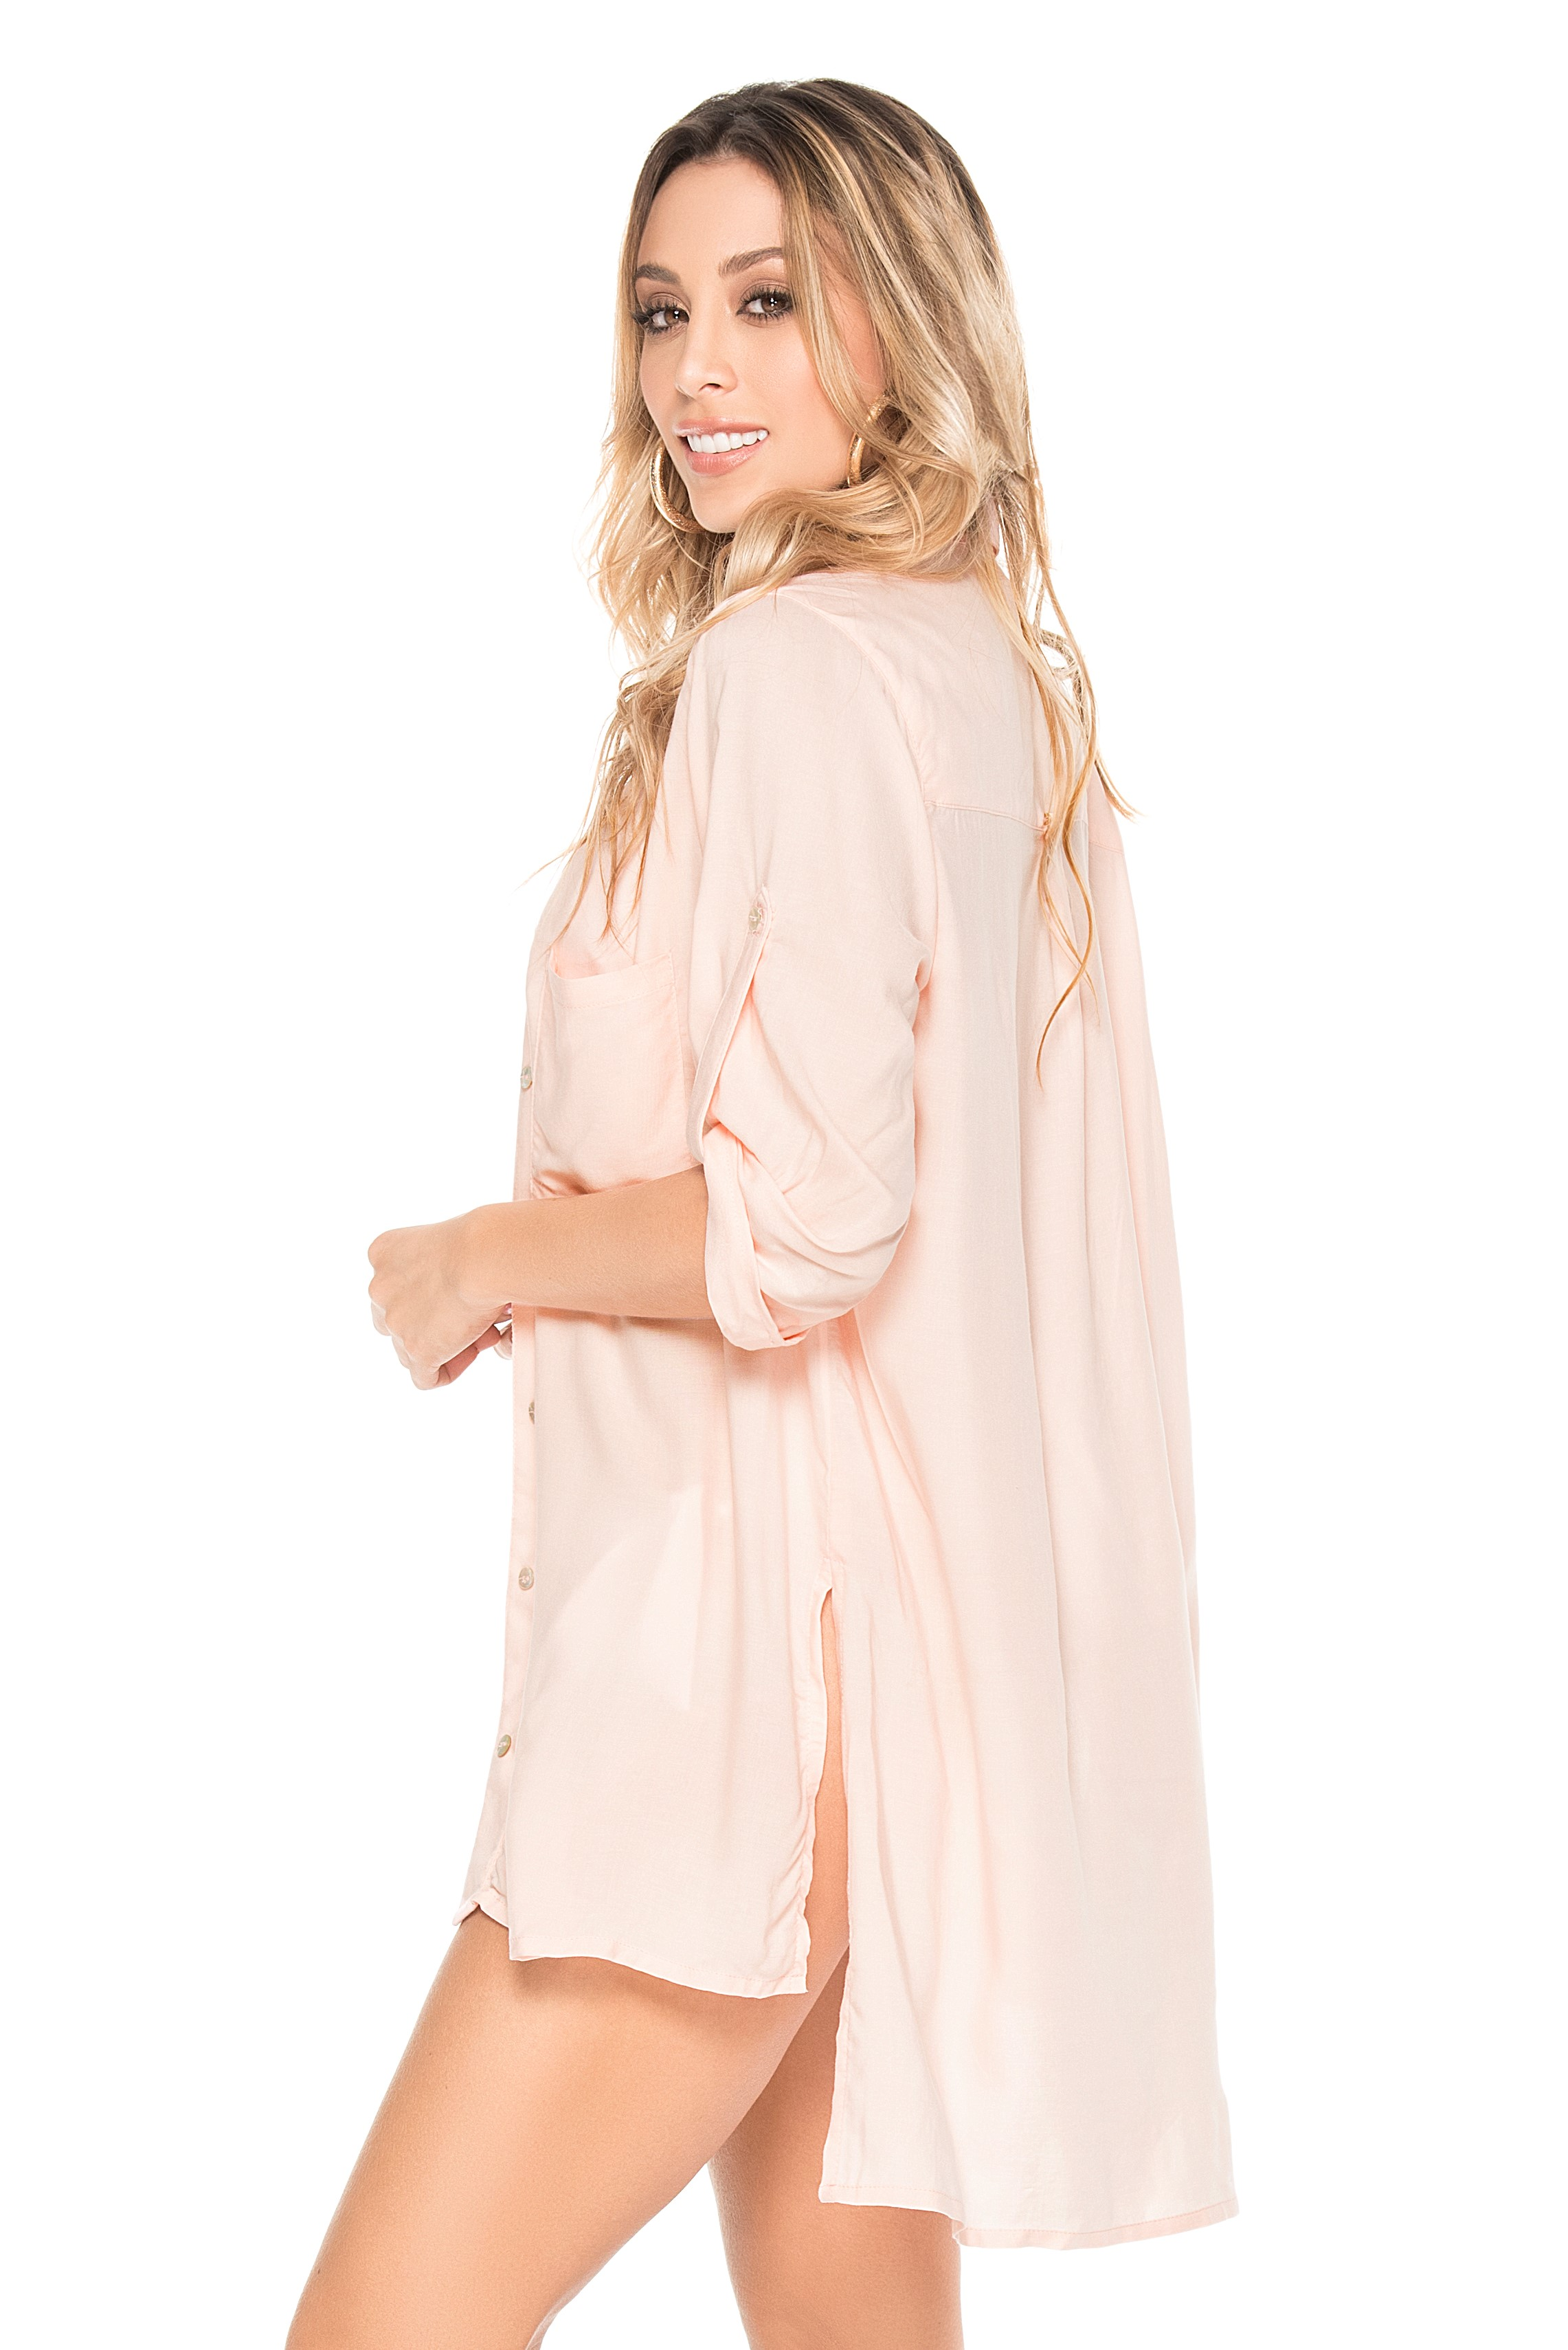 Phax Romantic Bay Shirt Light Pink -large-Pastel Roze